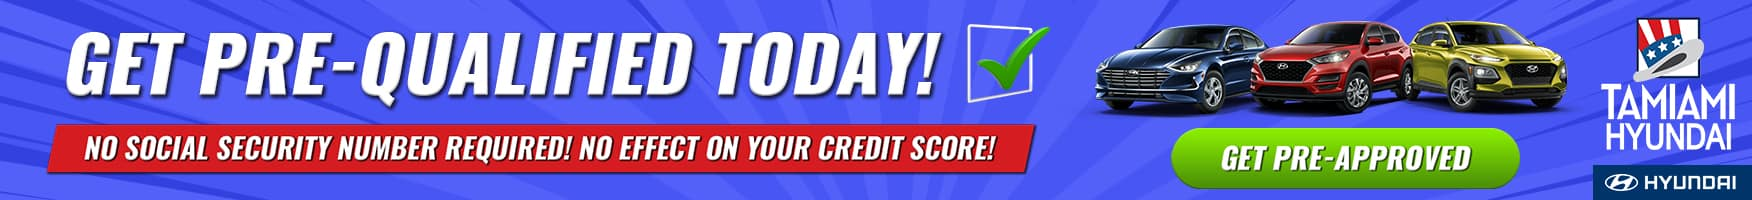 Get Pre-Qualified Instantly At Tamiami Hyundai with no impact on your credit score and no SSN required!